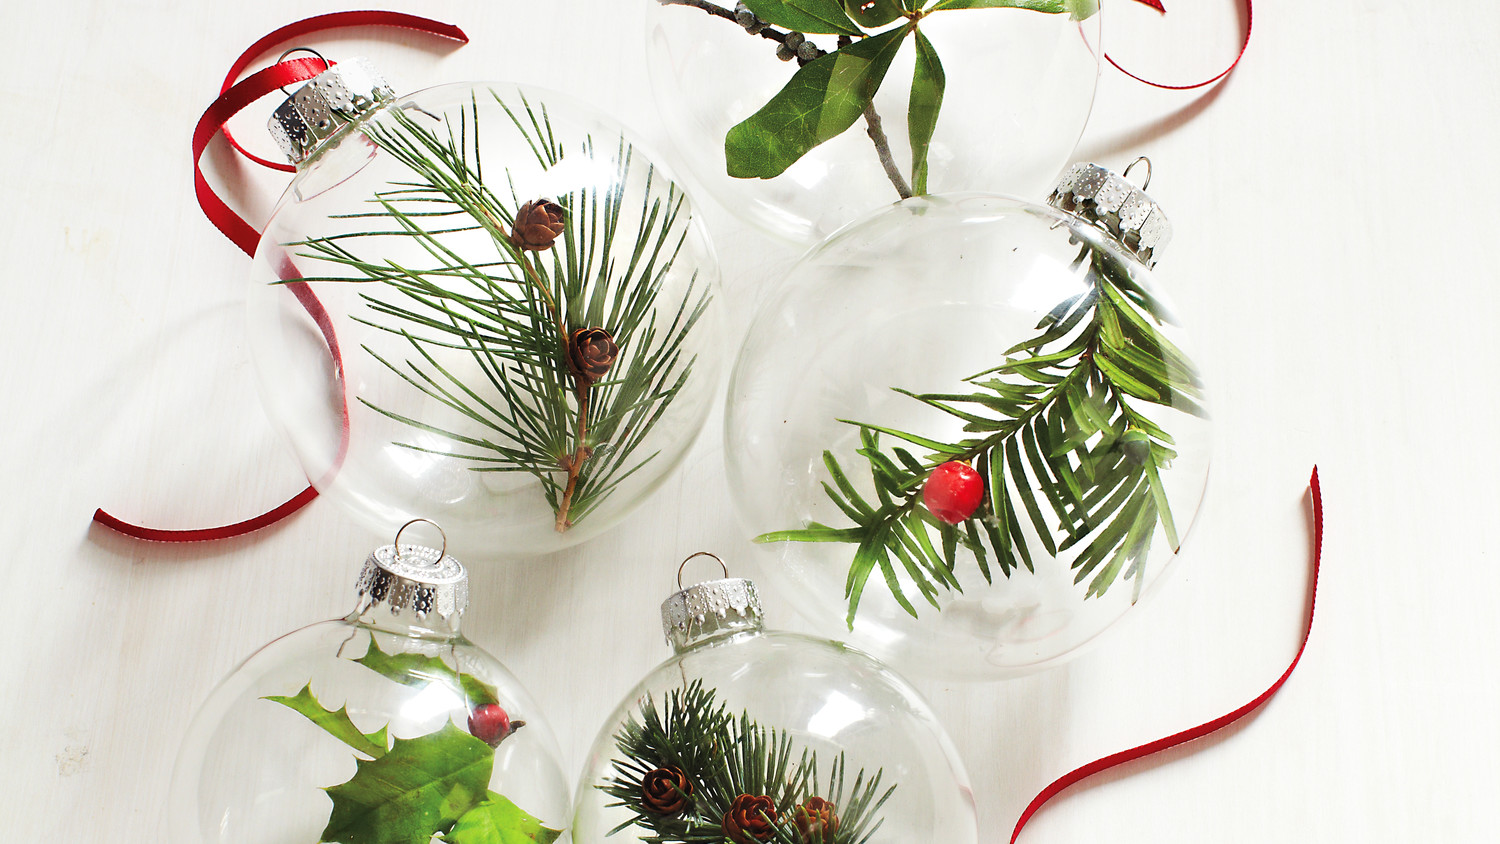 20 of our most memorable diy christmas ornament projects martha stewart - Christmas Decoration Kits